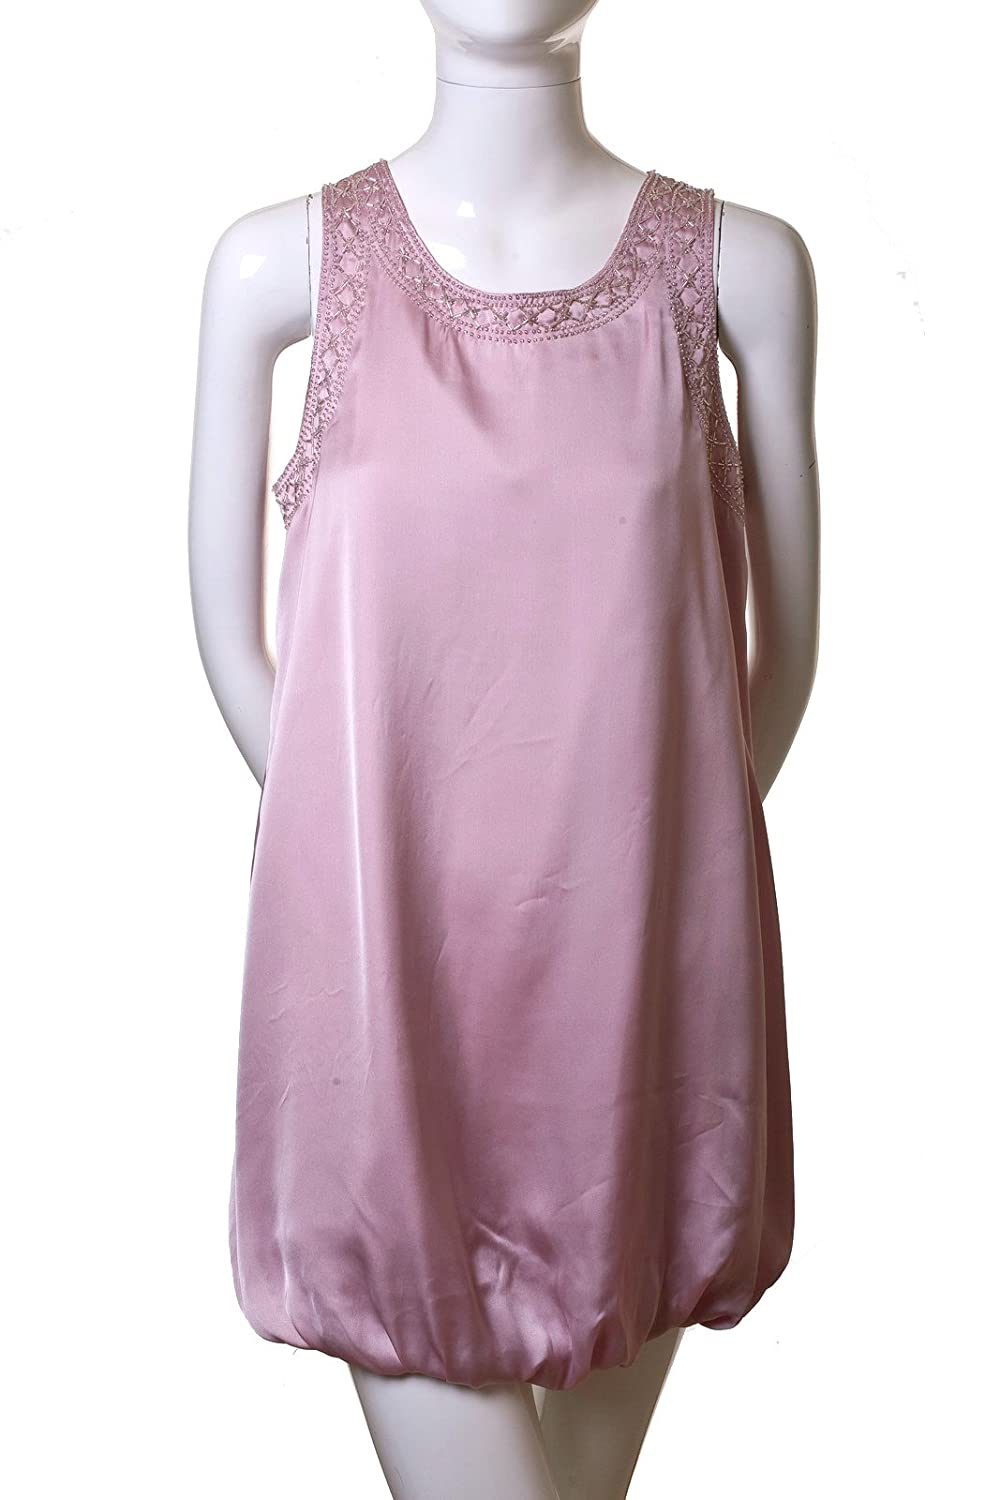 Mustard Seed Sleeveless Sequin Embroidered Fully Lined Satin Bubble Dress Pink L